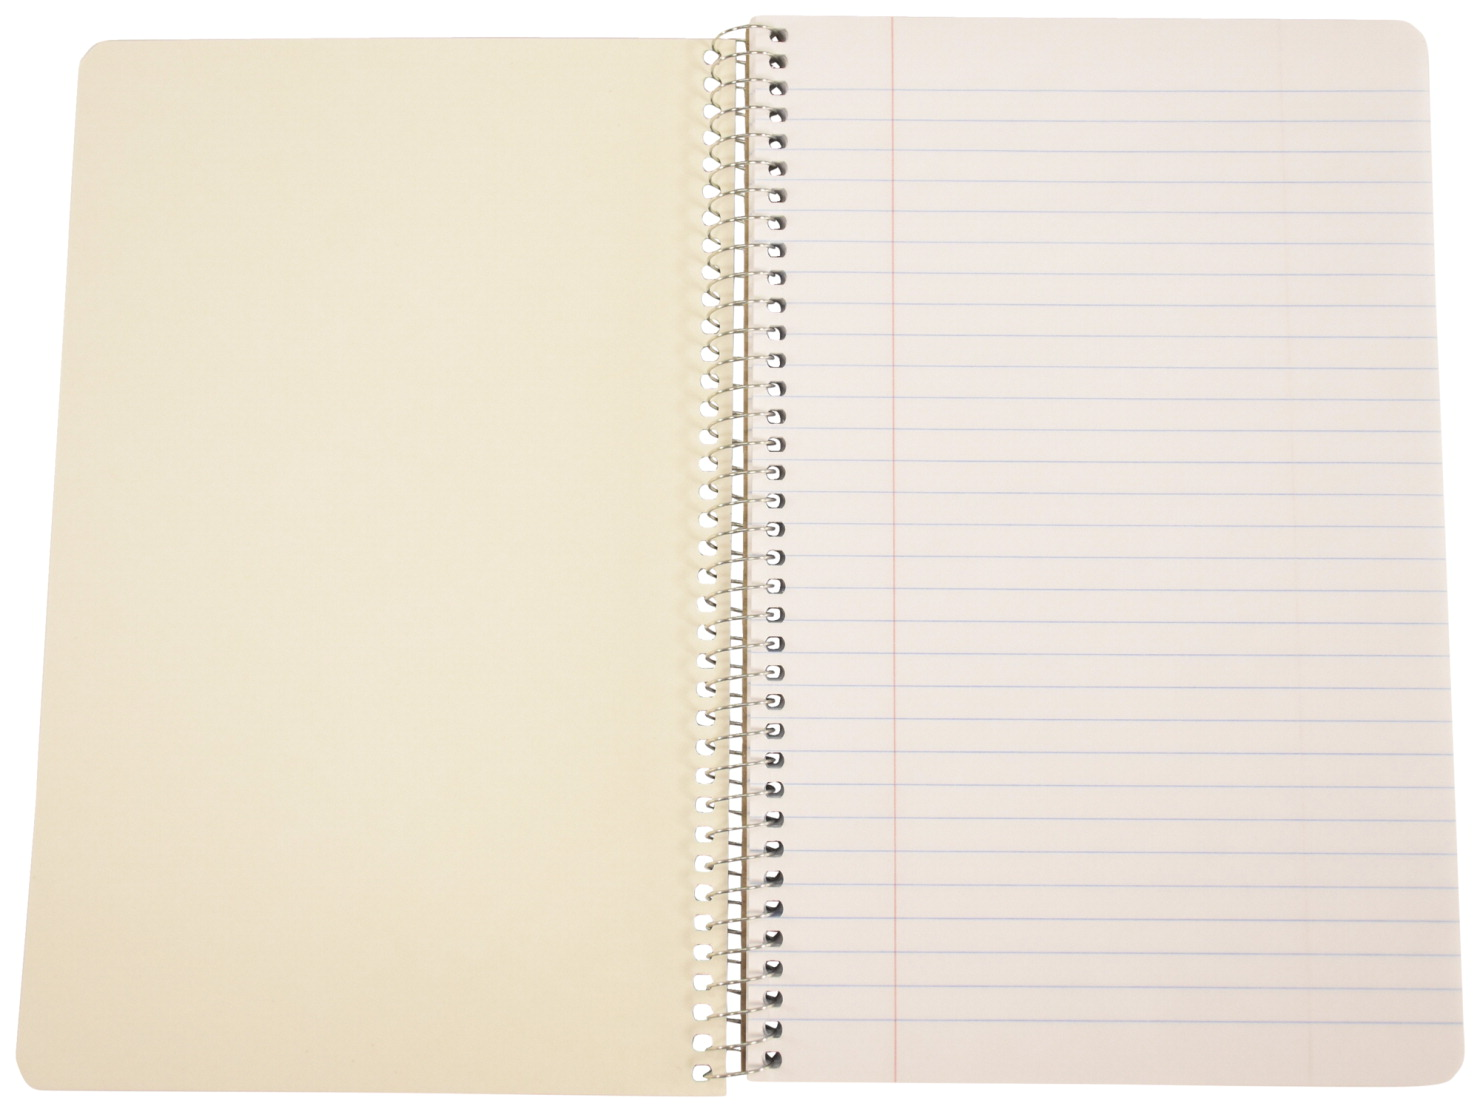 School Smart Spiral Non-Perforated 1 Subject College Ruled Notebook, 9-1/2  x 6 Inches